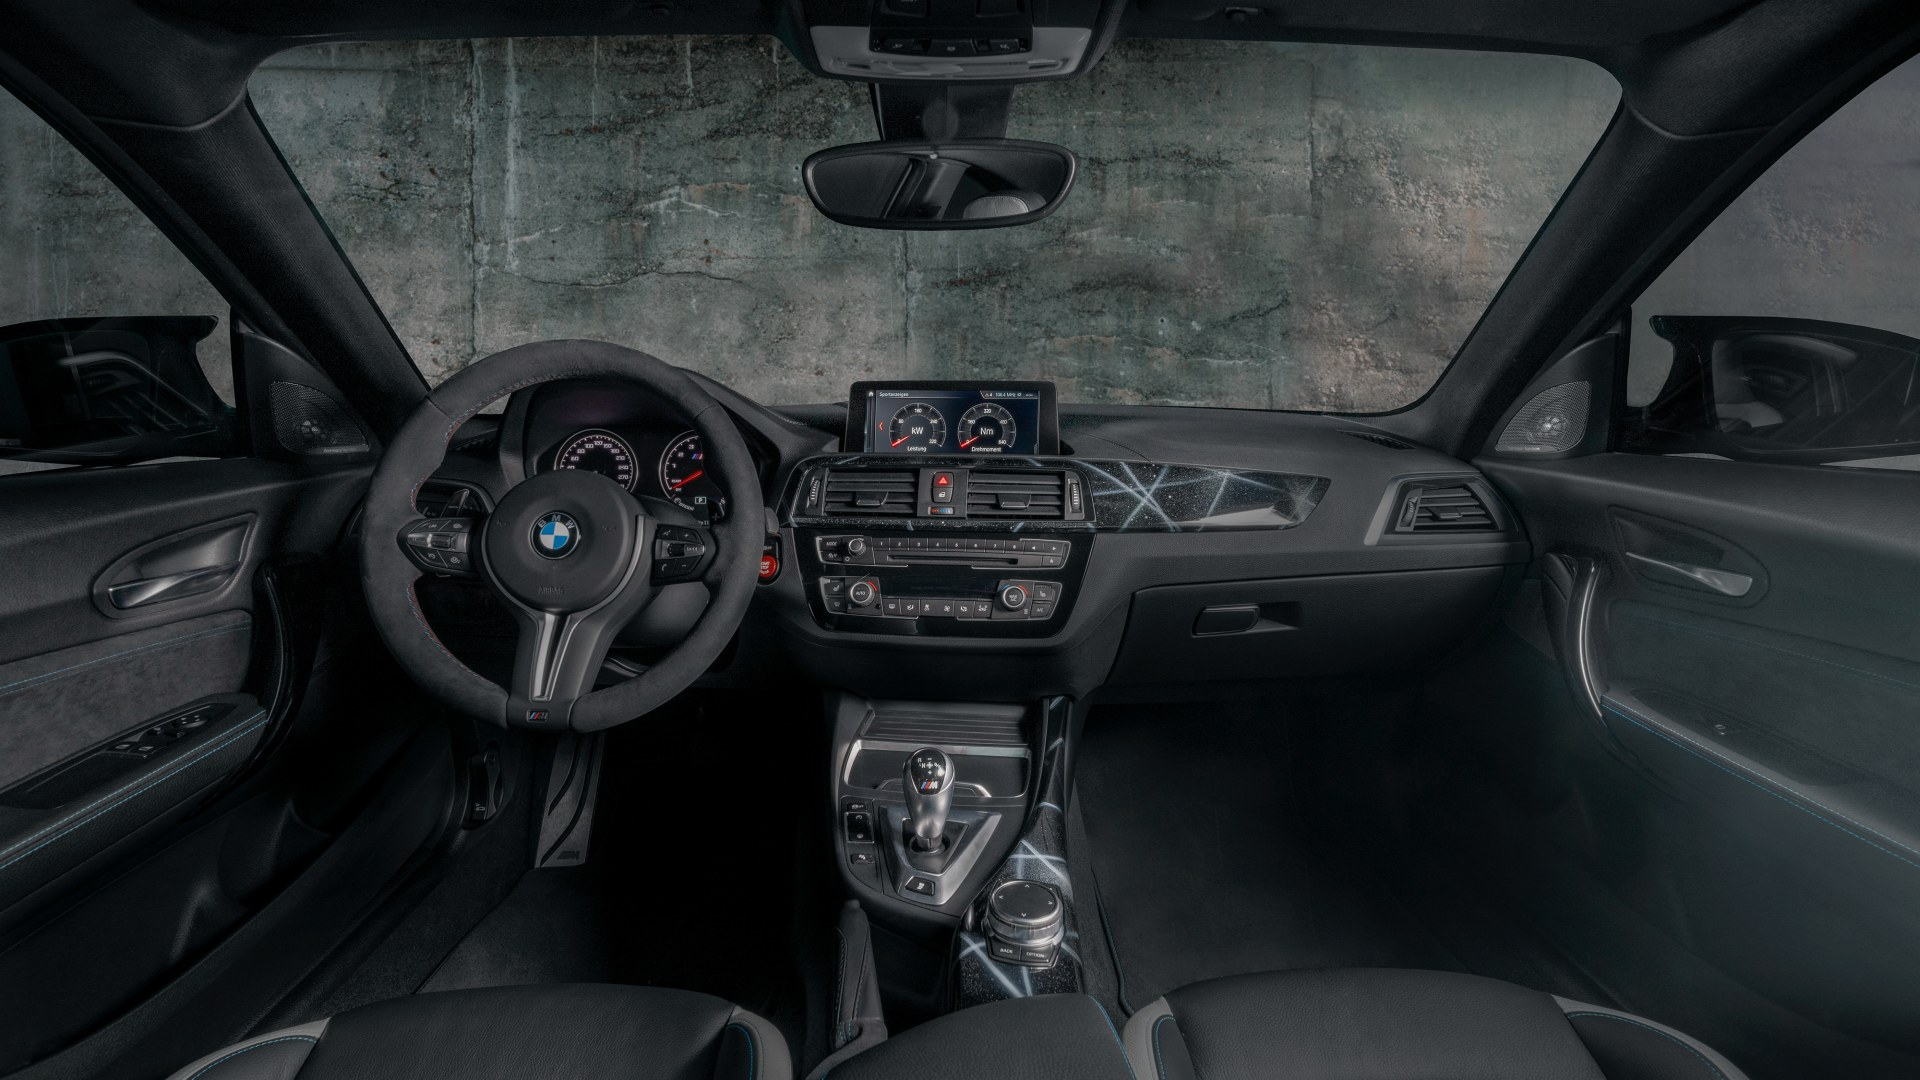 Cockpit and M sports steering wheel of the BMW M2 Edition designed by FUTURA 2000